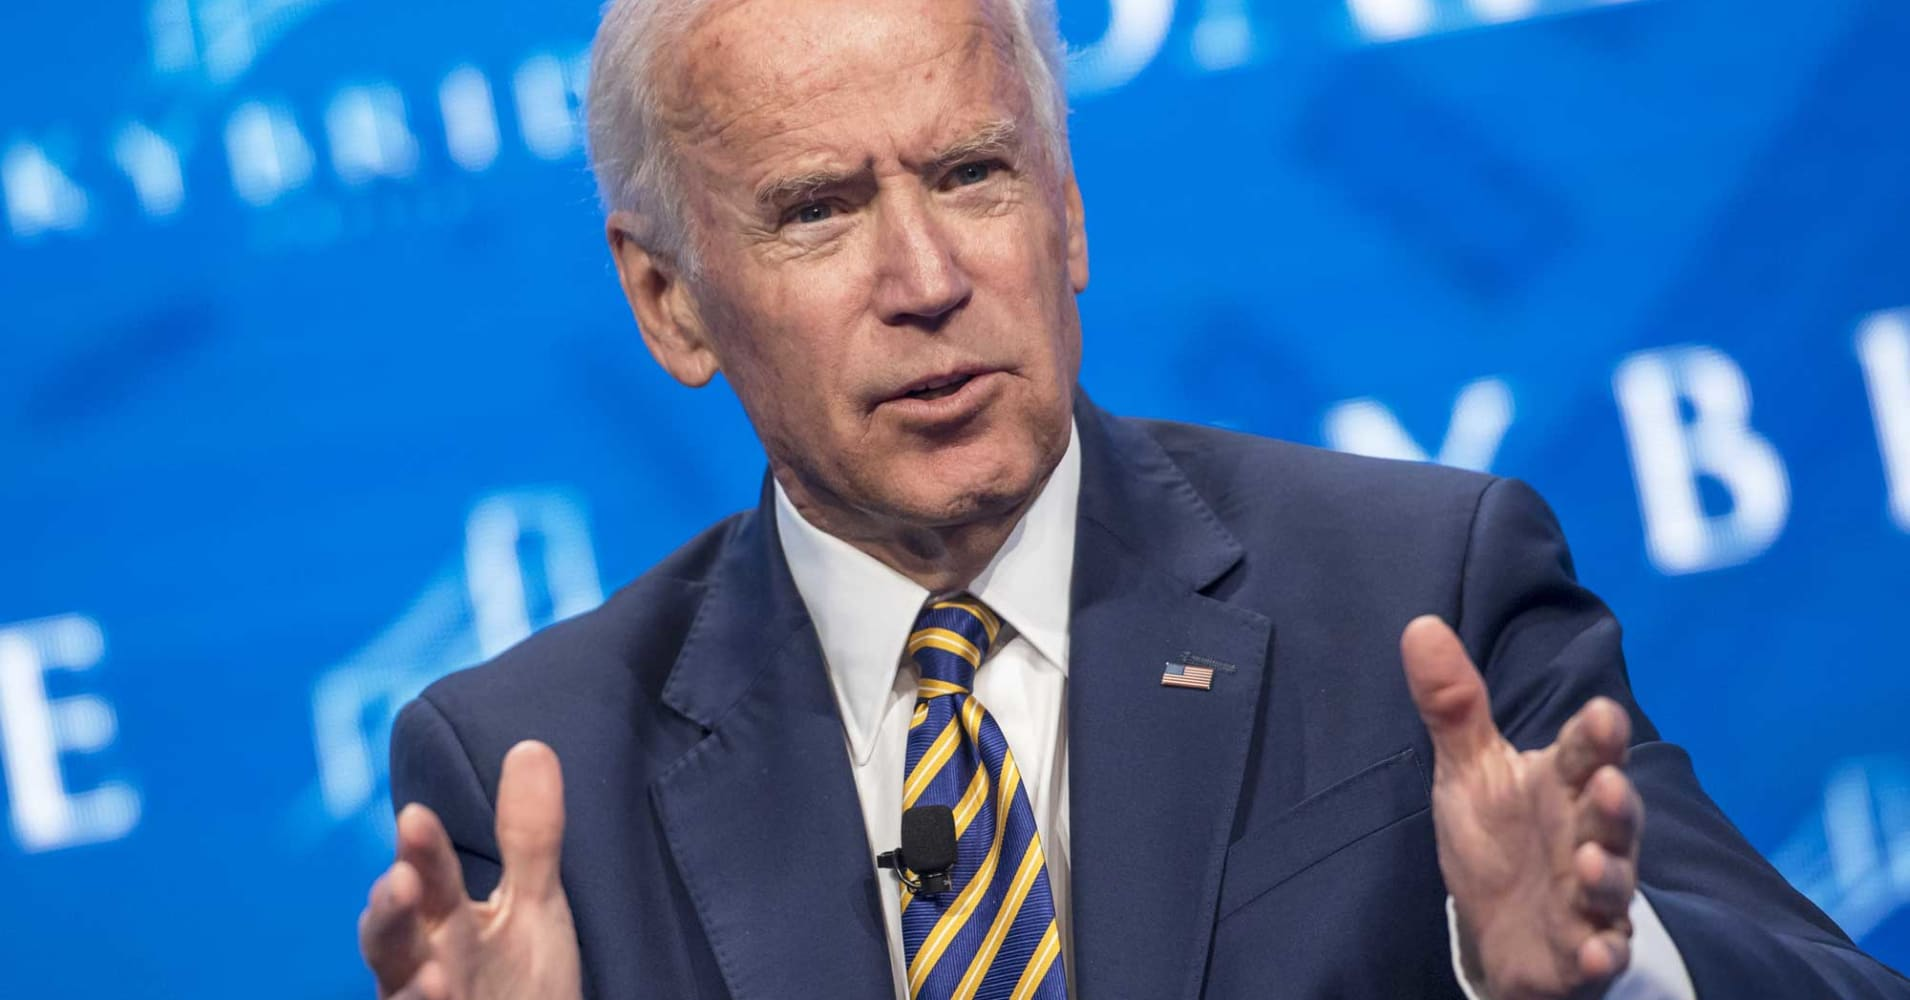 Biden reportedly says Clinton was never a 'great candidate' but would have been a 'good president'